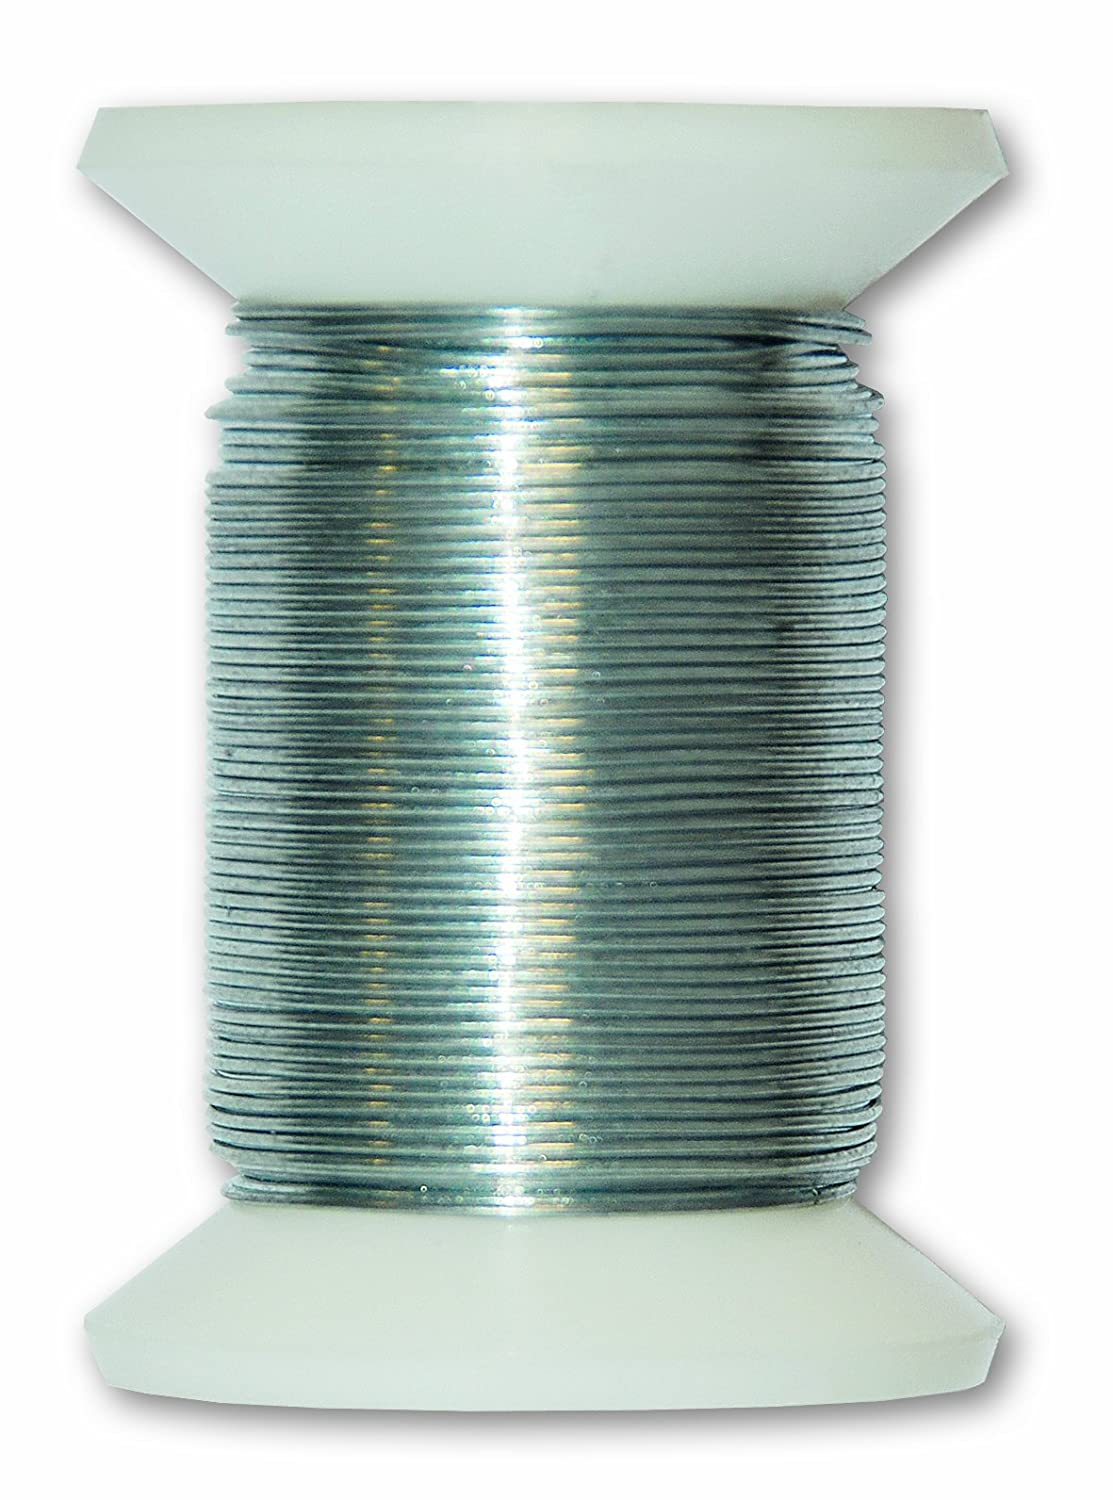 Chapuis VFCA4 Metal Wire Galvanised Steel Diameter 0.5 mm Length 20 m